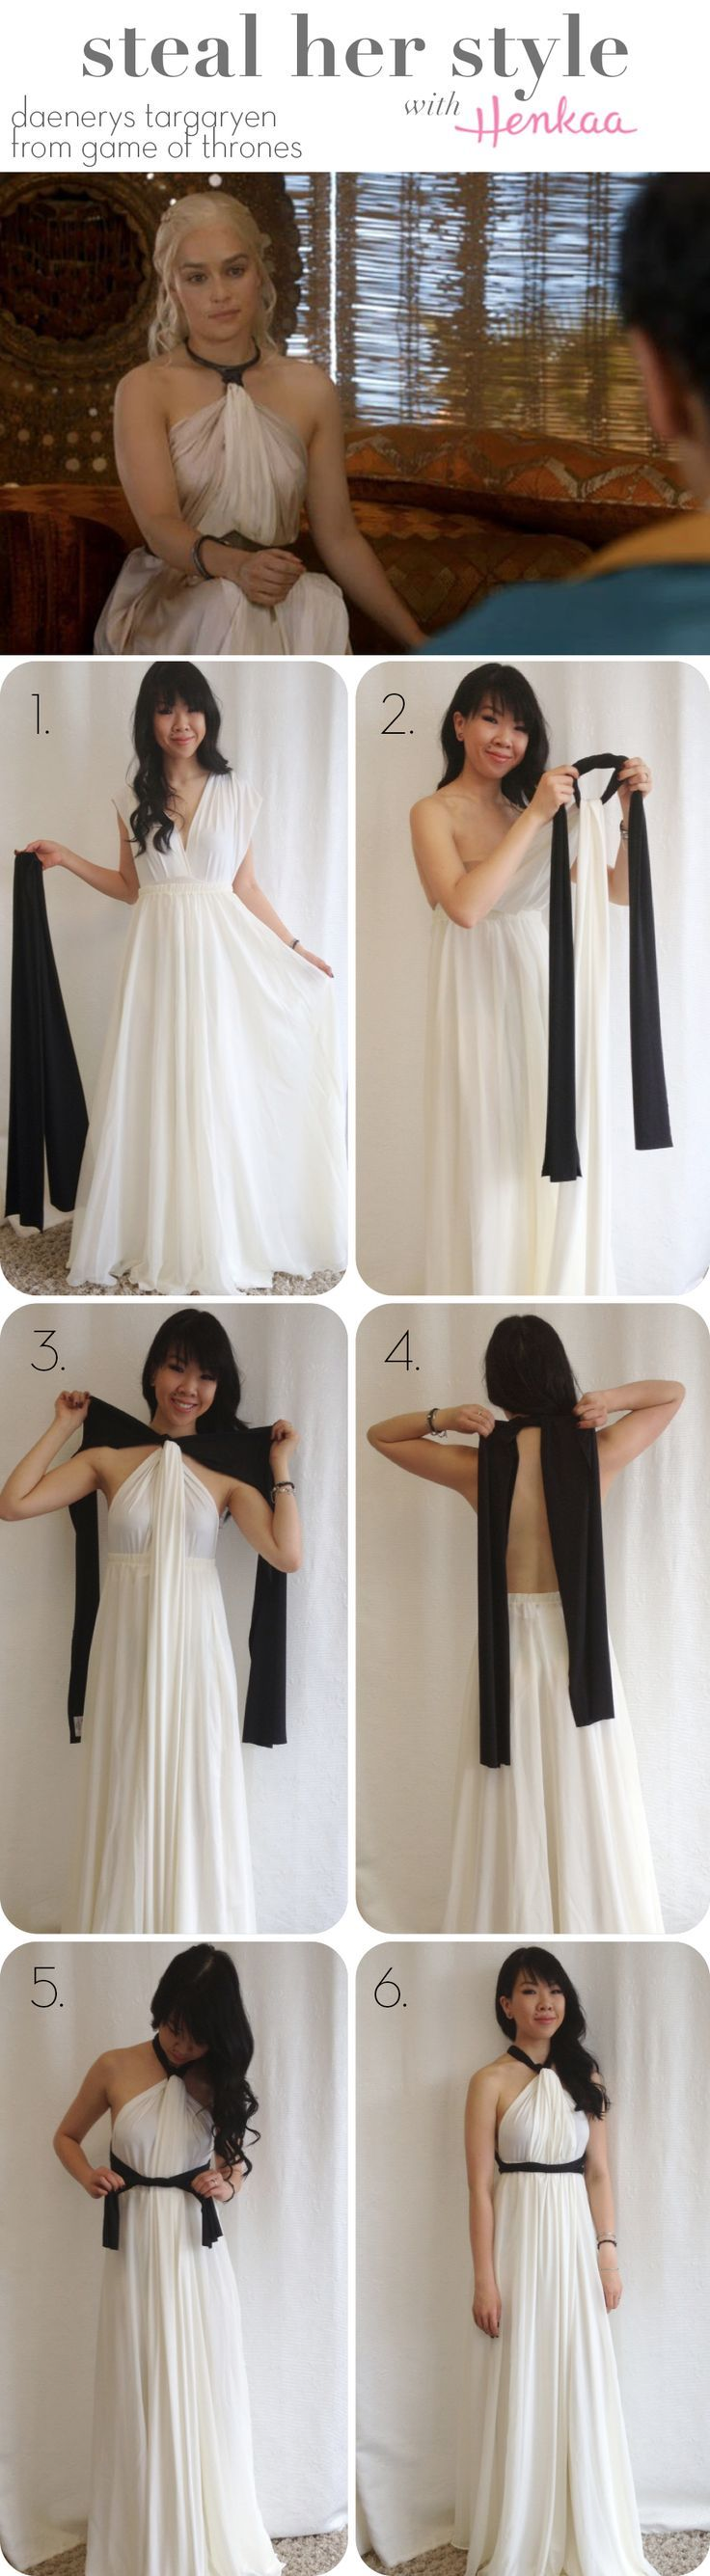 Steal Daenerys Targaryen's (from Game of Thrones) Style with a convertible dress & sash!